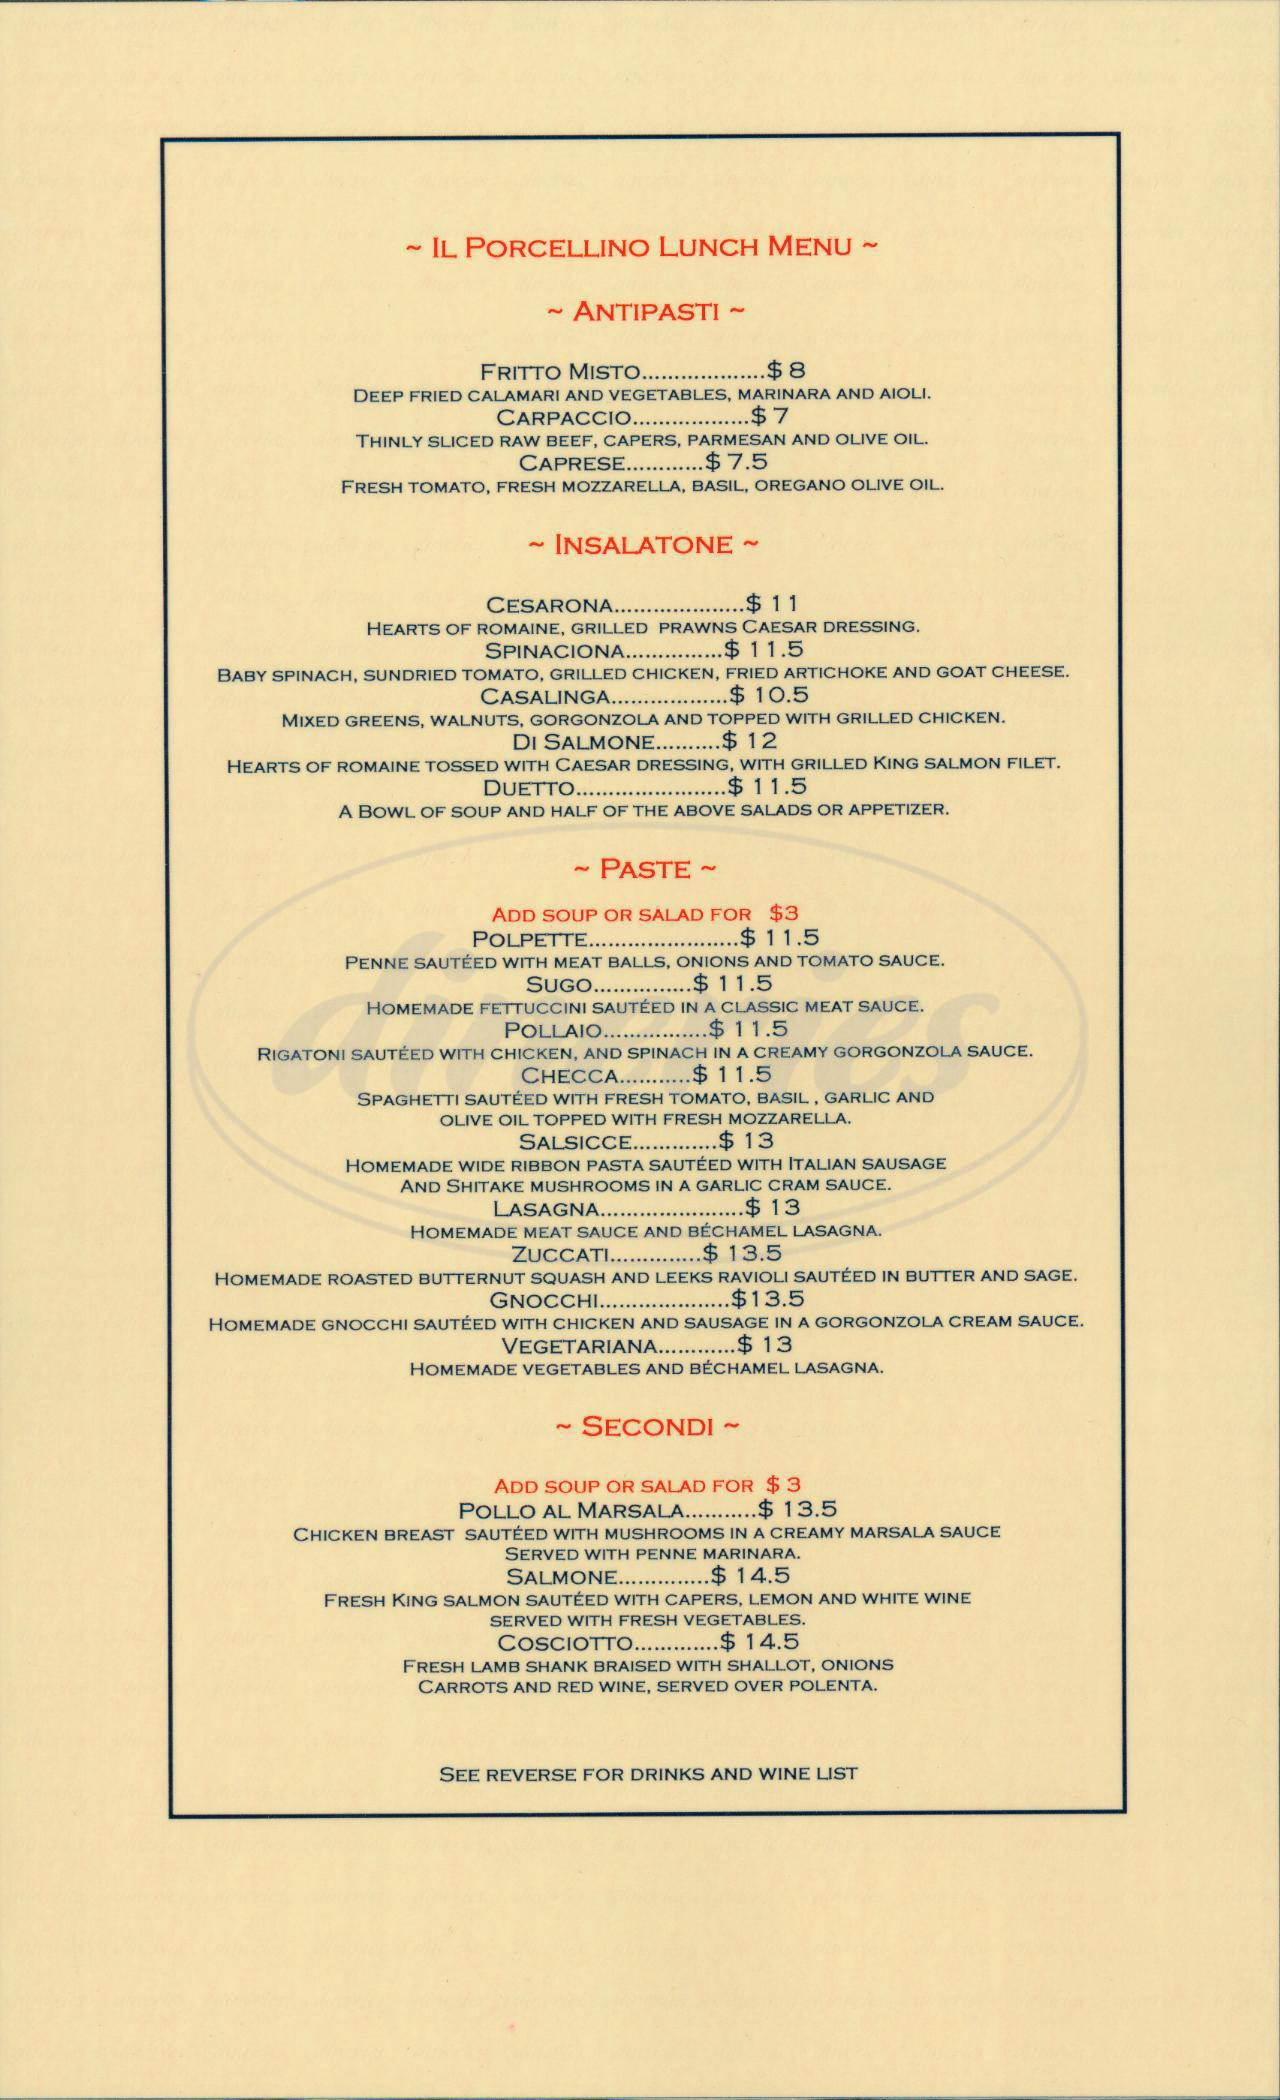 menu for Il Porcellino